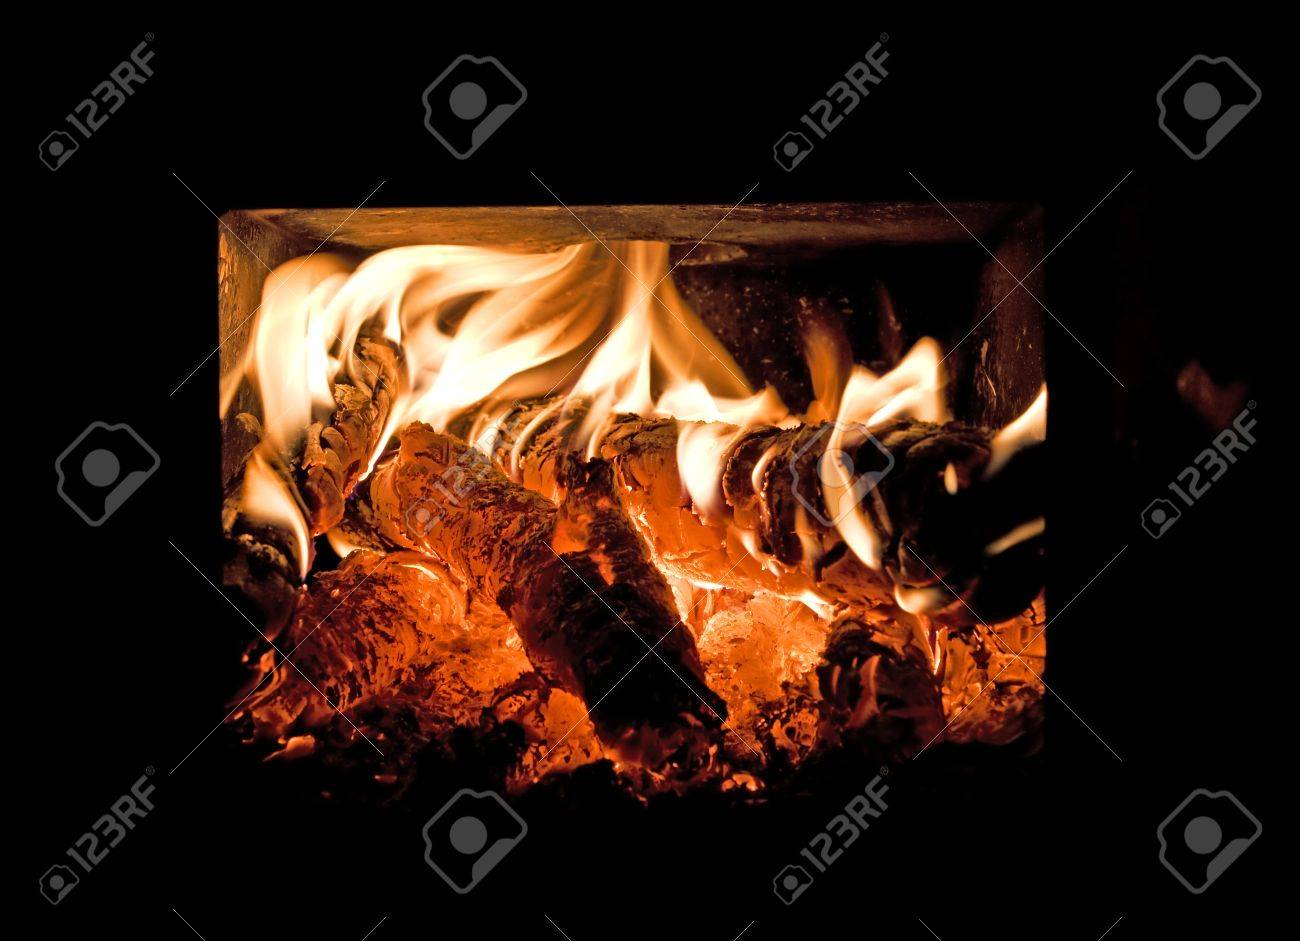 Peaceably Glo Primo Glo Dealers Heat Royalty Heat A Wood Burner Stock Photo Flames A Wood Burner Stock Glow Flames Glow houzz 01 Heat And Glow